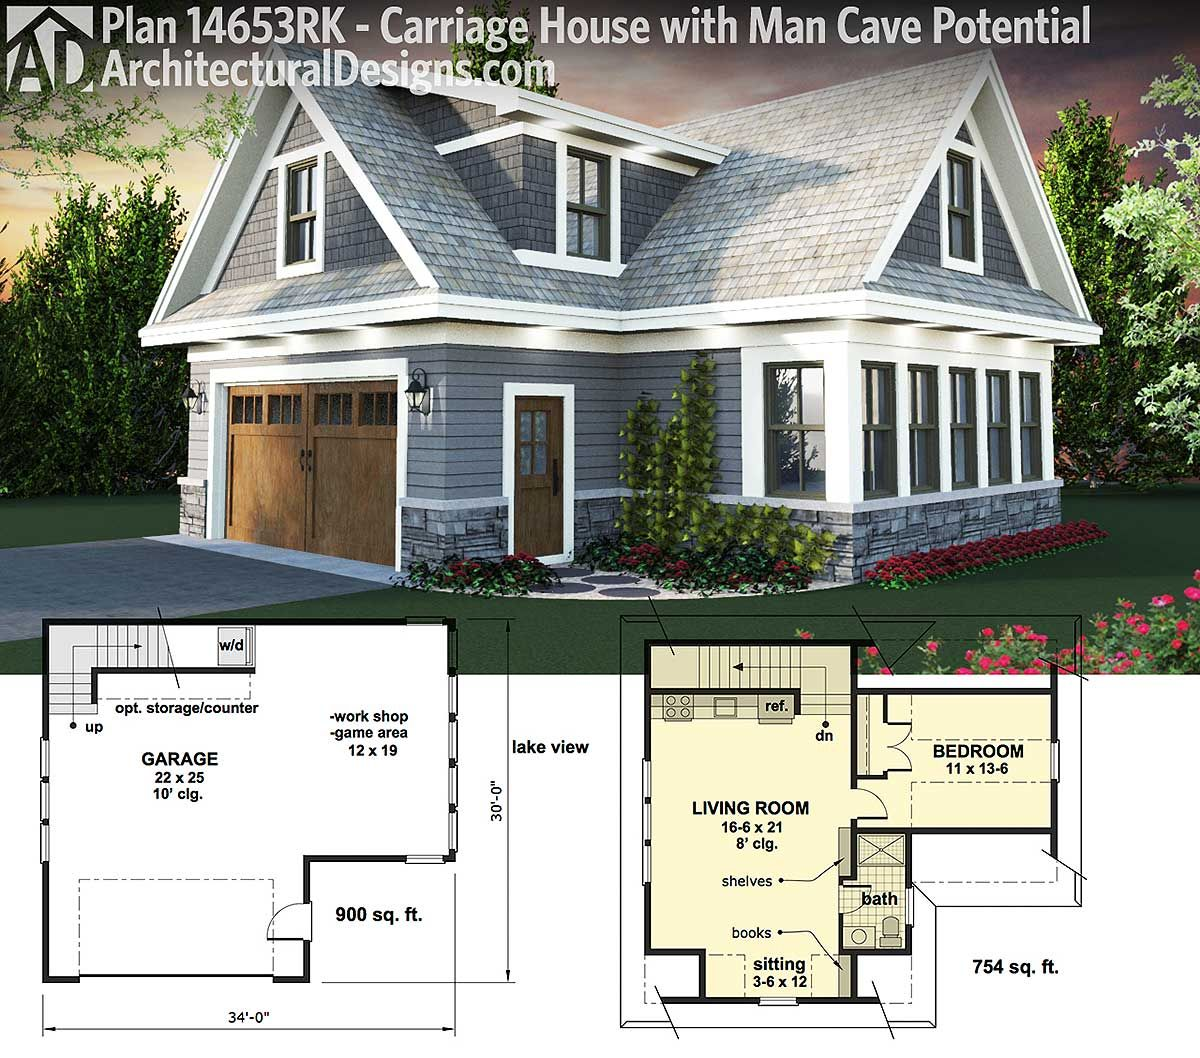 Plan 14653rk carriage house plan with man cave potential for How much is it to build a small house